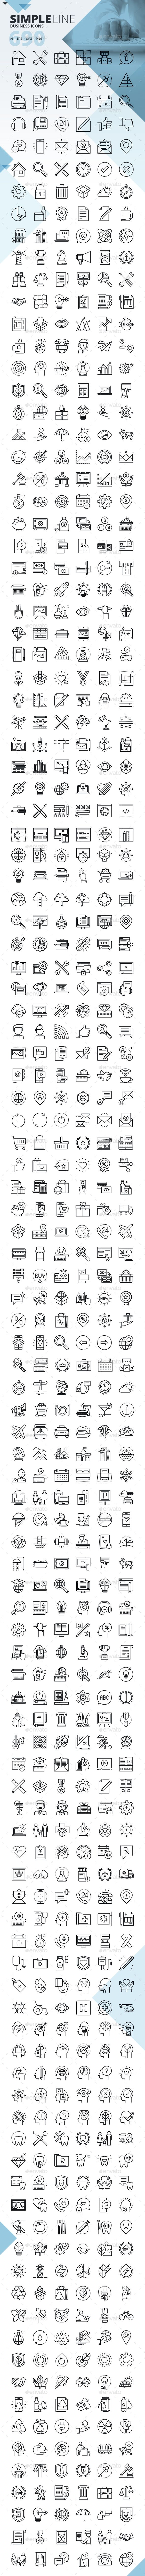 Simple Icons Design Template - Icons Design Template Vector EPS, AI Illustrator. Download here: https://graphicriver.net/item/simple-icons/19371515?ref=yinkira